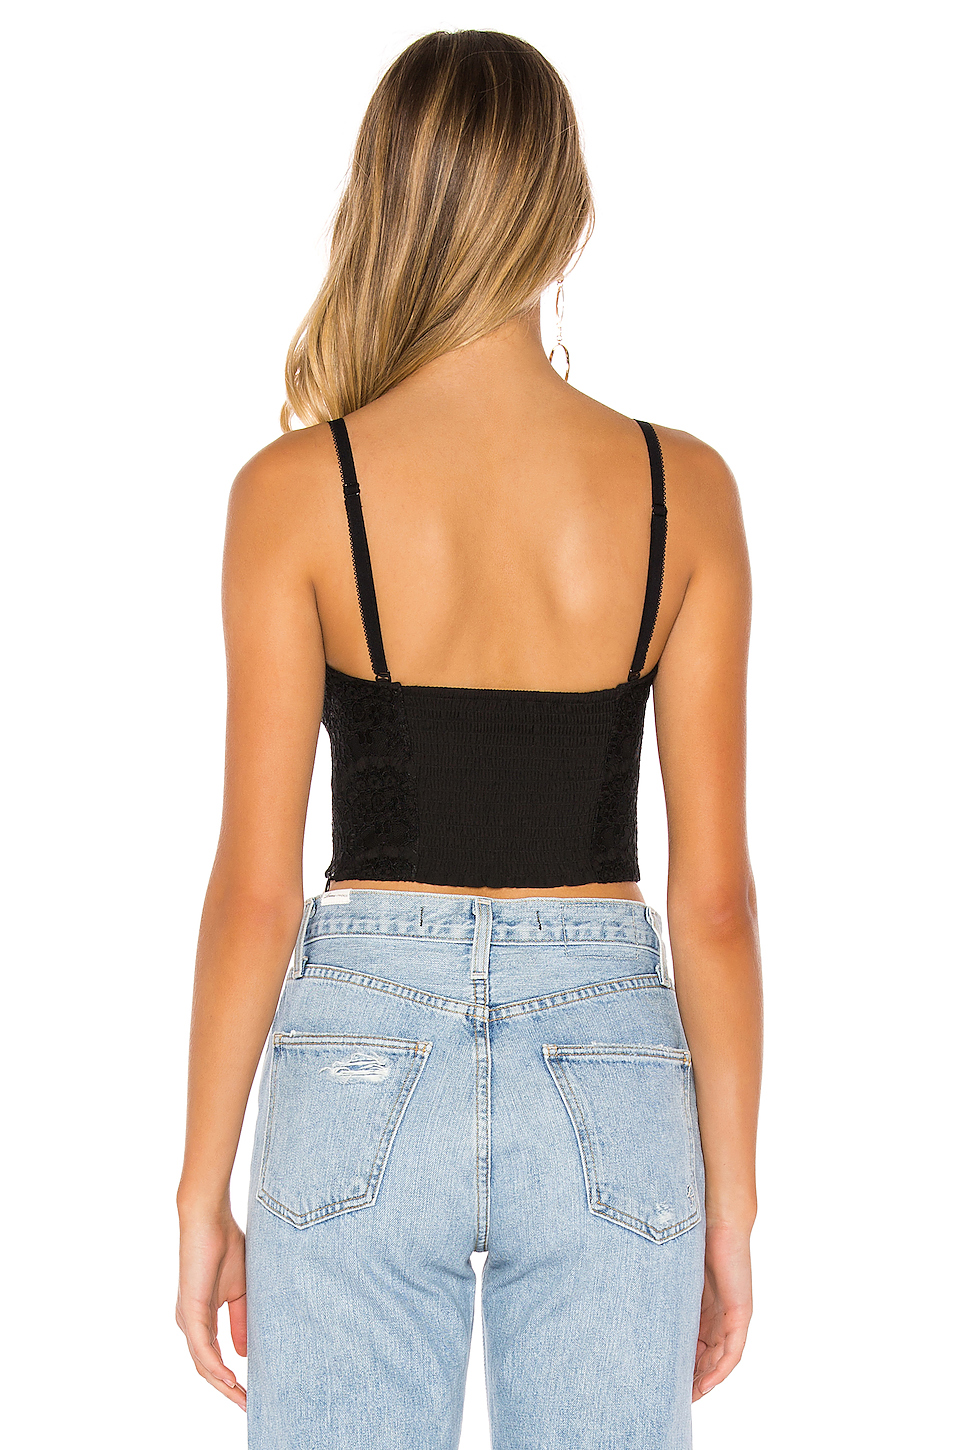 CAMI NYC The Scarlett Top